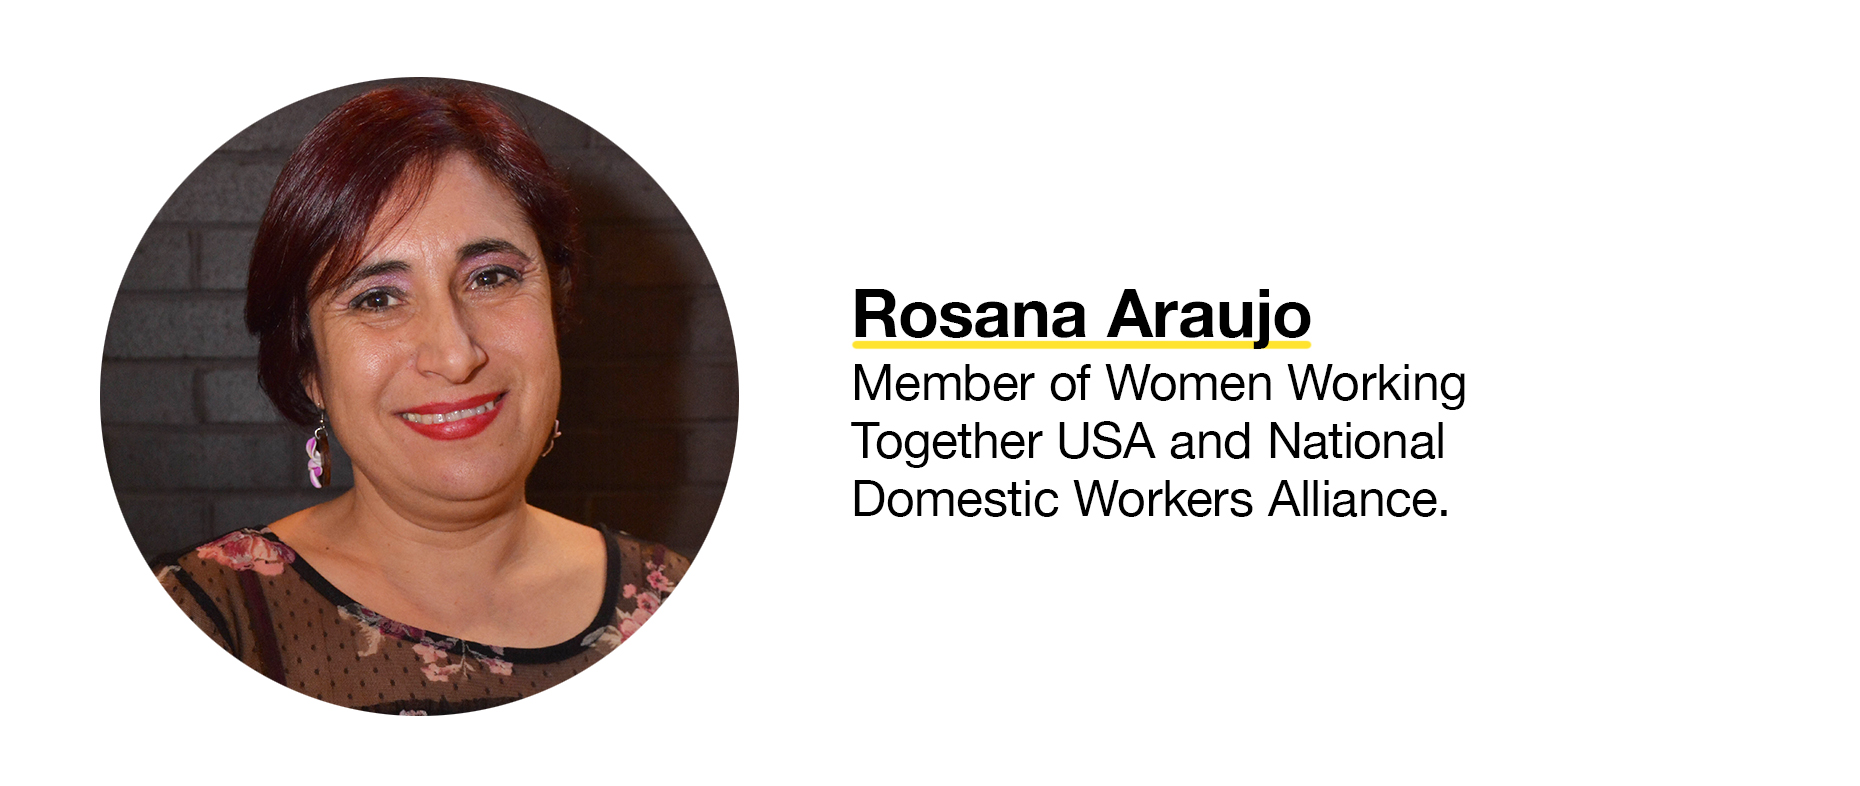 Rosana Araujo, member of Women Working Together USA and National Domestic Workers Alliance.